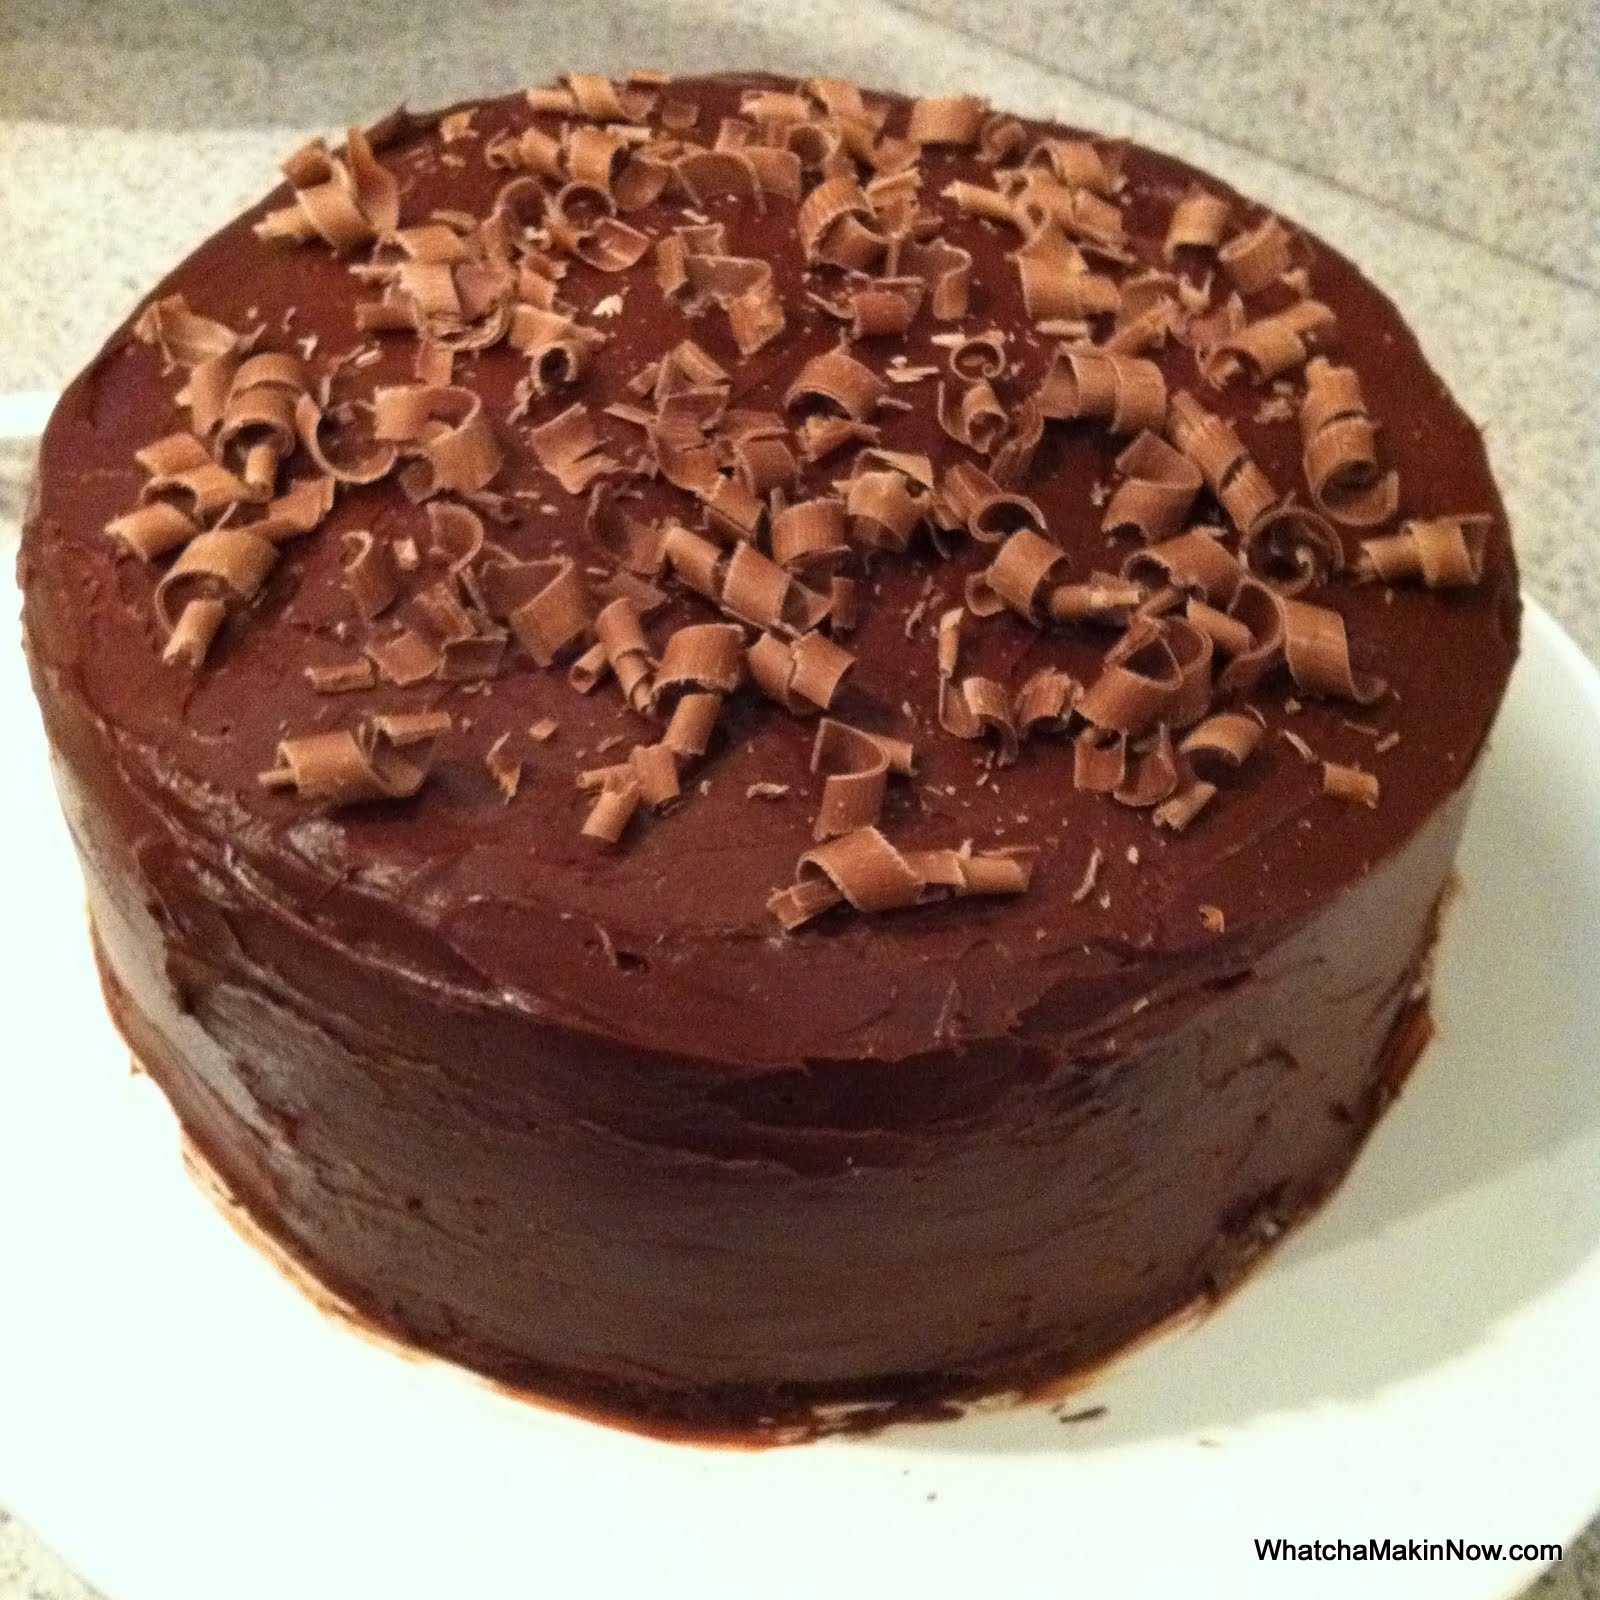 Whatcha Makin' Now?: Chocolate Cheesecake Cake from Recipe Girl